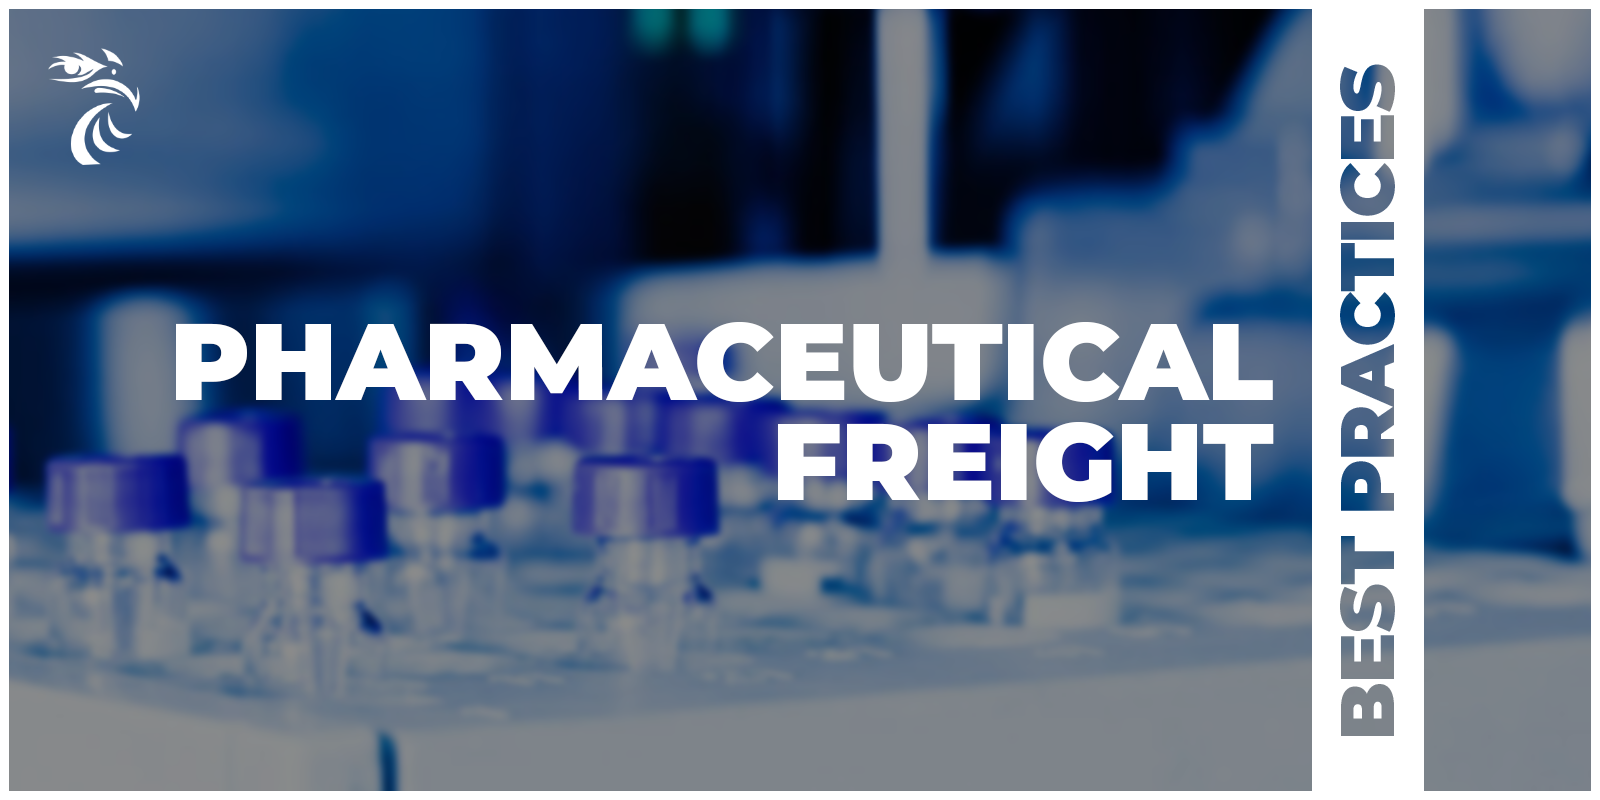 A blurred picture of pharmaceuticals with the title: Pharmaceutical Freight: Best Practices